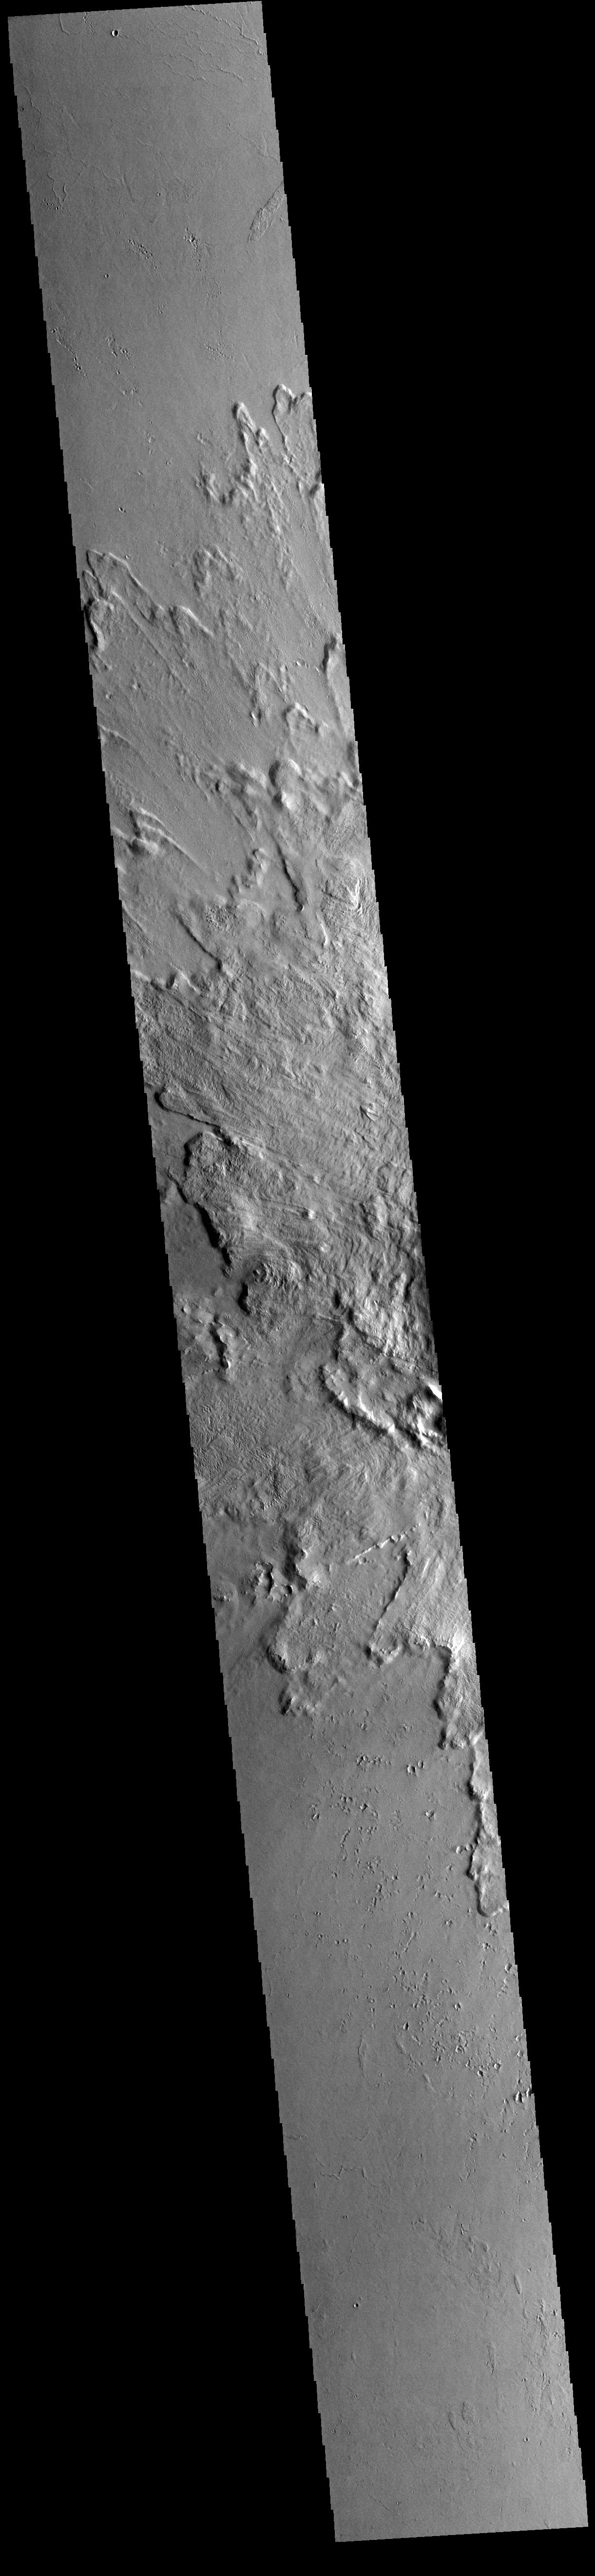 This image from NASAs Mars Odyssey shows part of the ejecta blanket of Tooting Crater. Tooting Crater is located west of Olympus Mons.